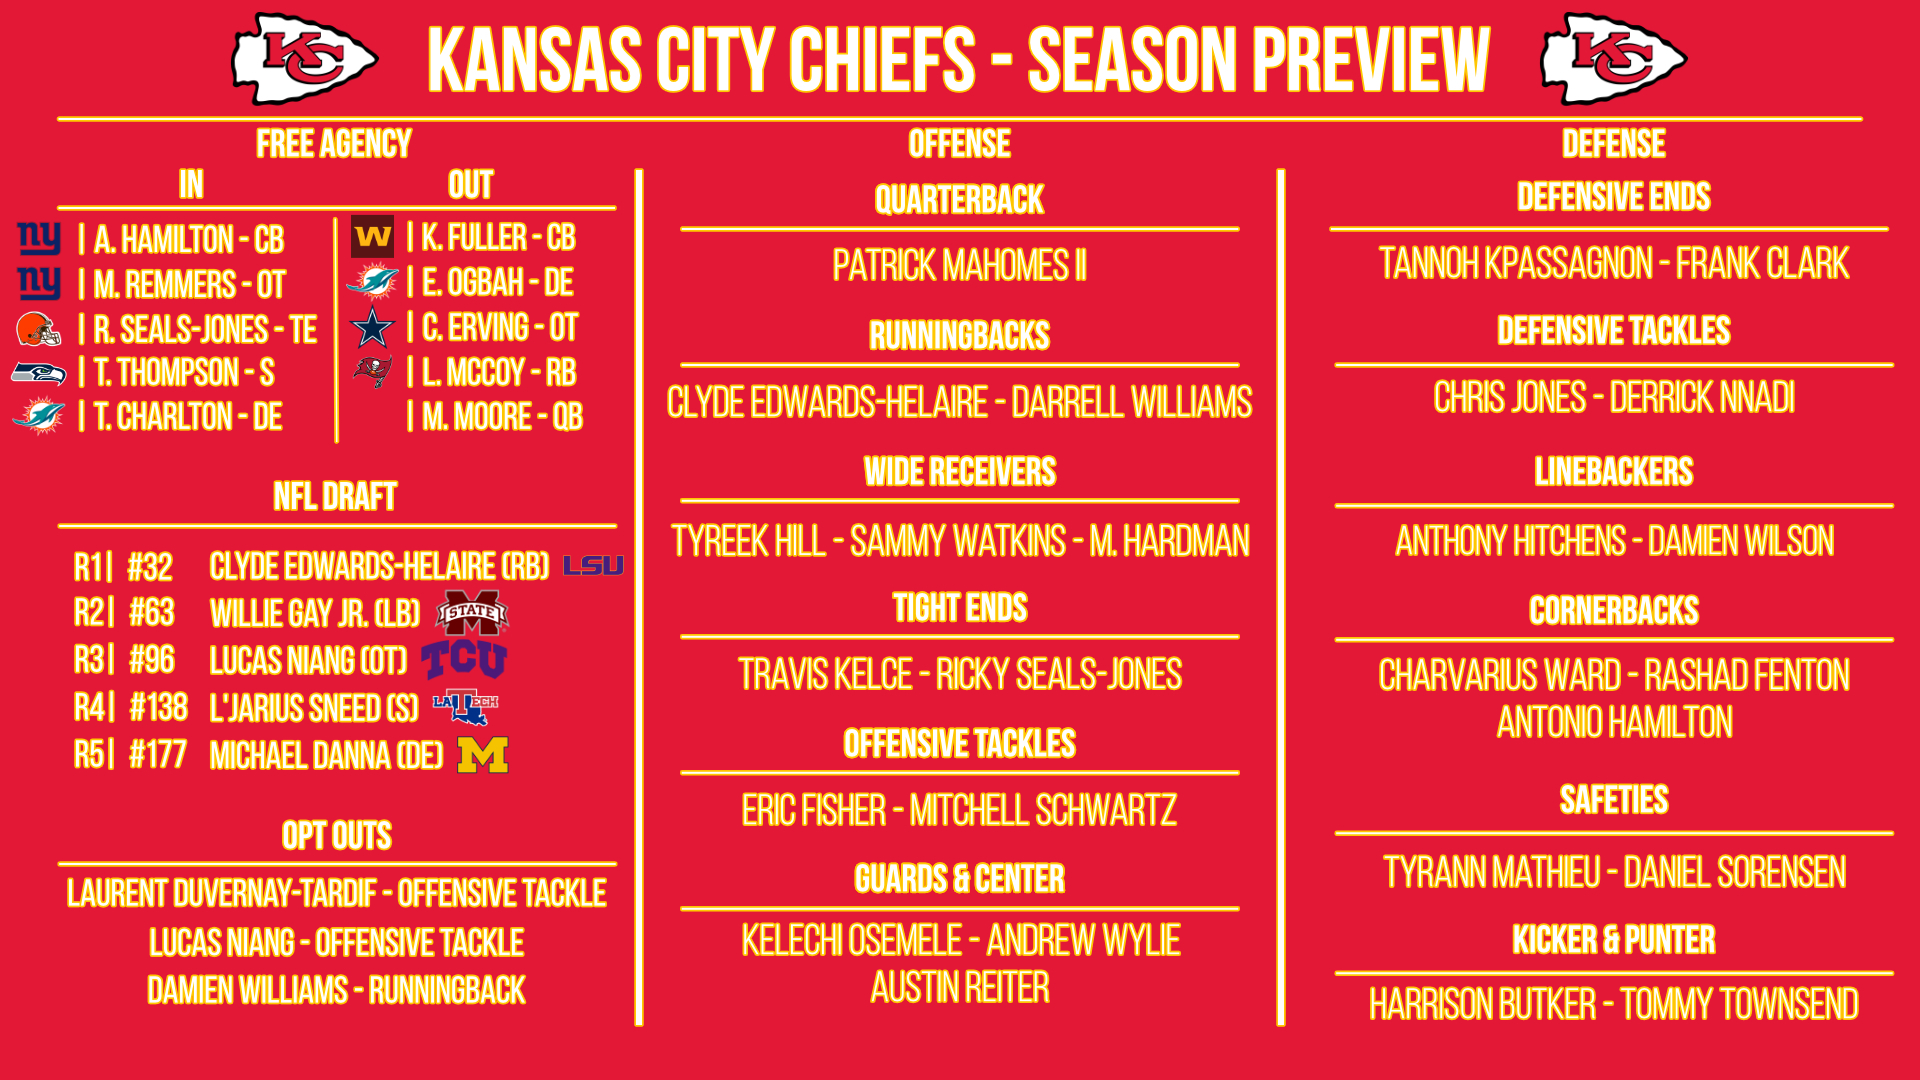 Kansas City Chiefs preview